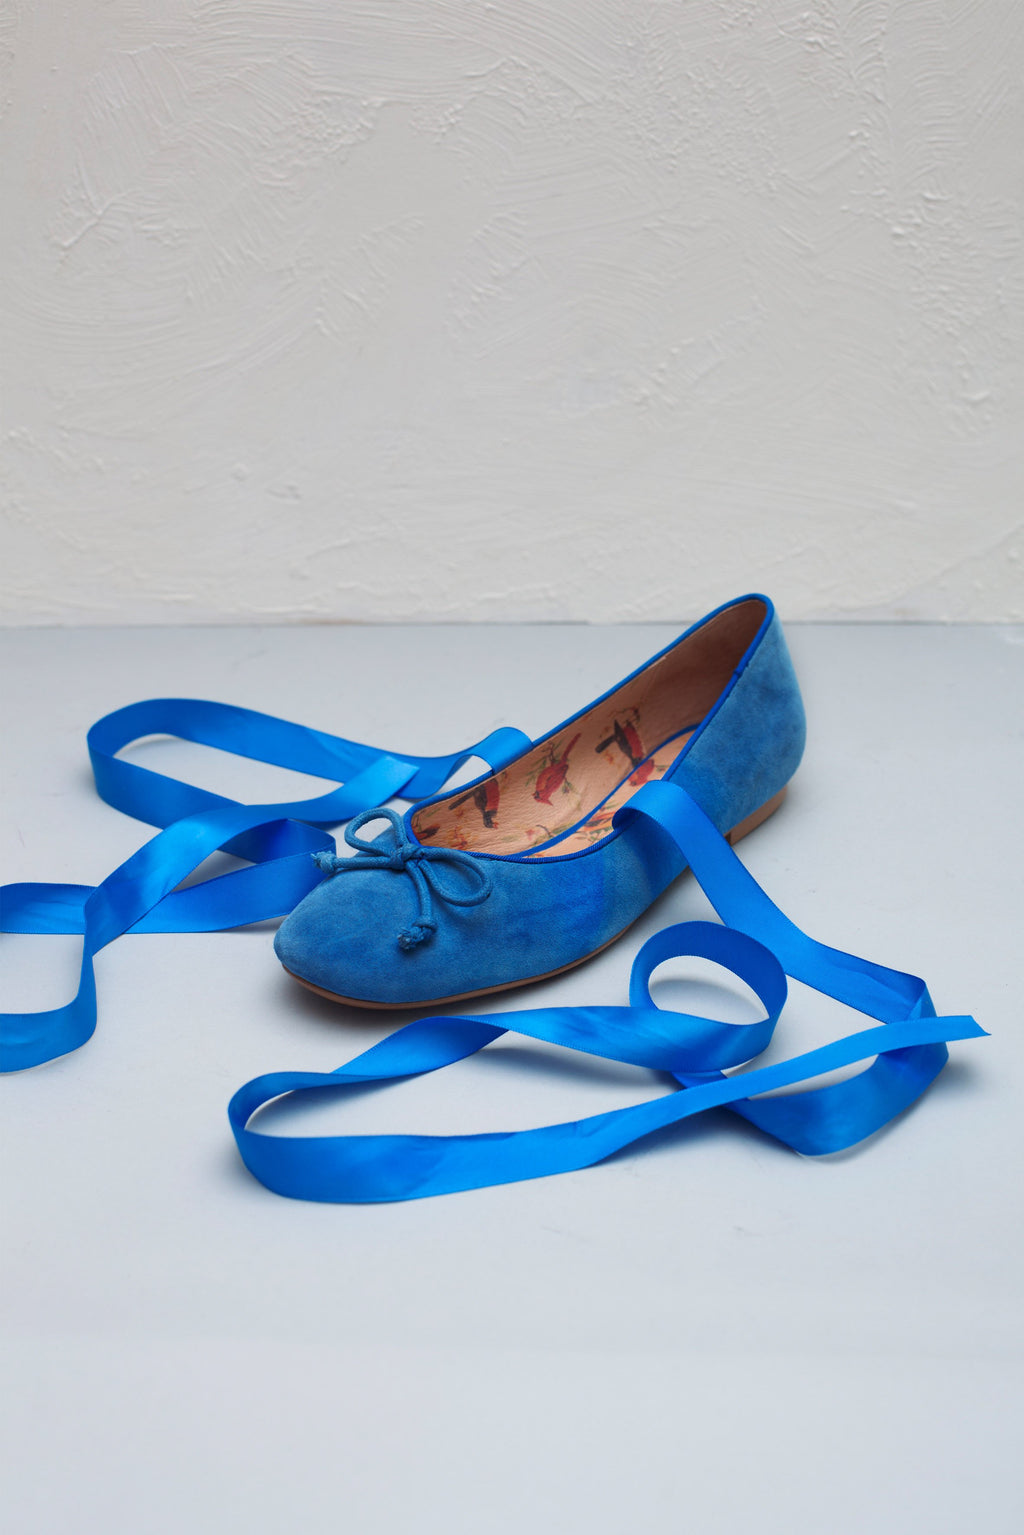 Margot cobalt blue ballerinas with satin ribbon ties by London based Designer Miss L Fire